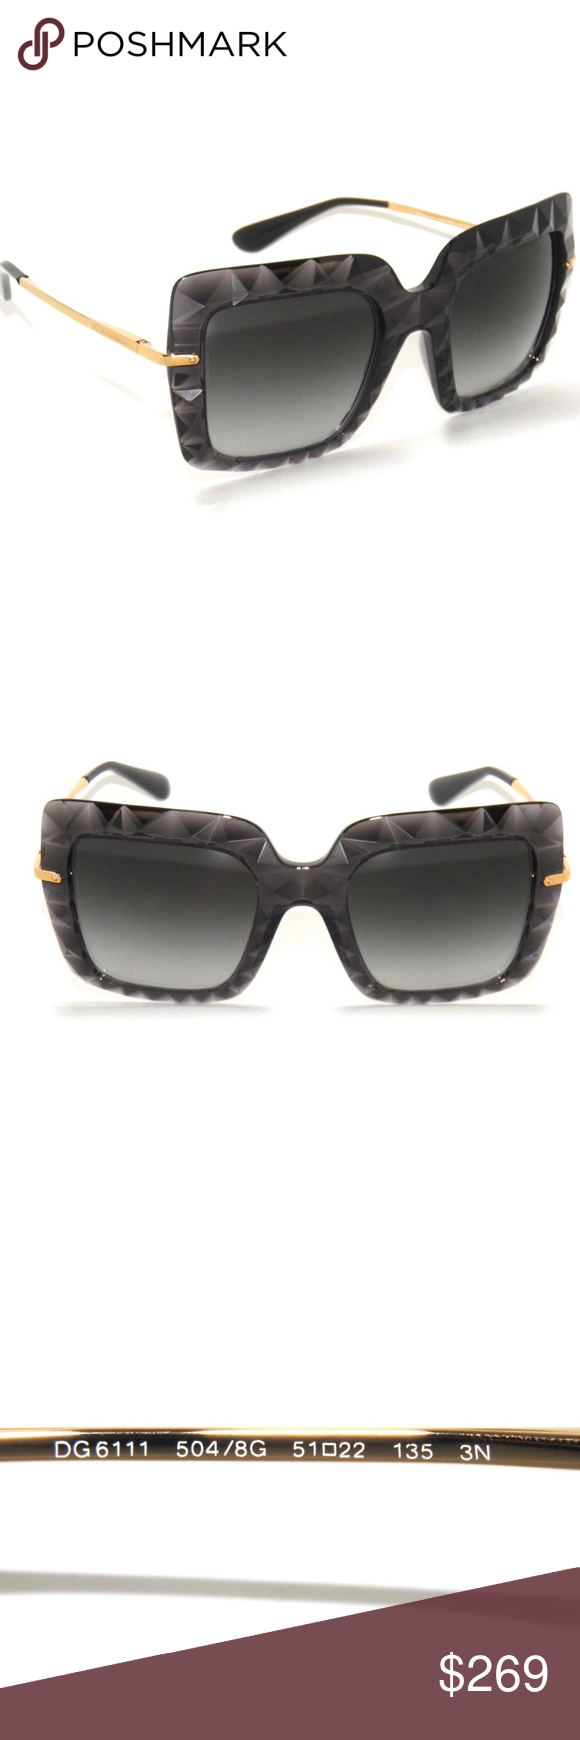 dfd2e92ae75b DOLCE   GABBANA 6111 AUTHENTIC NEW! DG 6111 Color 504 8G 51-22-135 Made in  Italy Comes with original D G Case